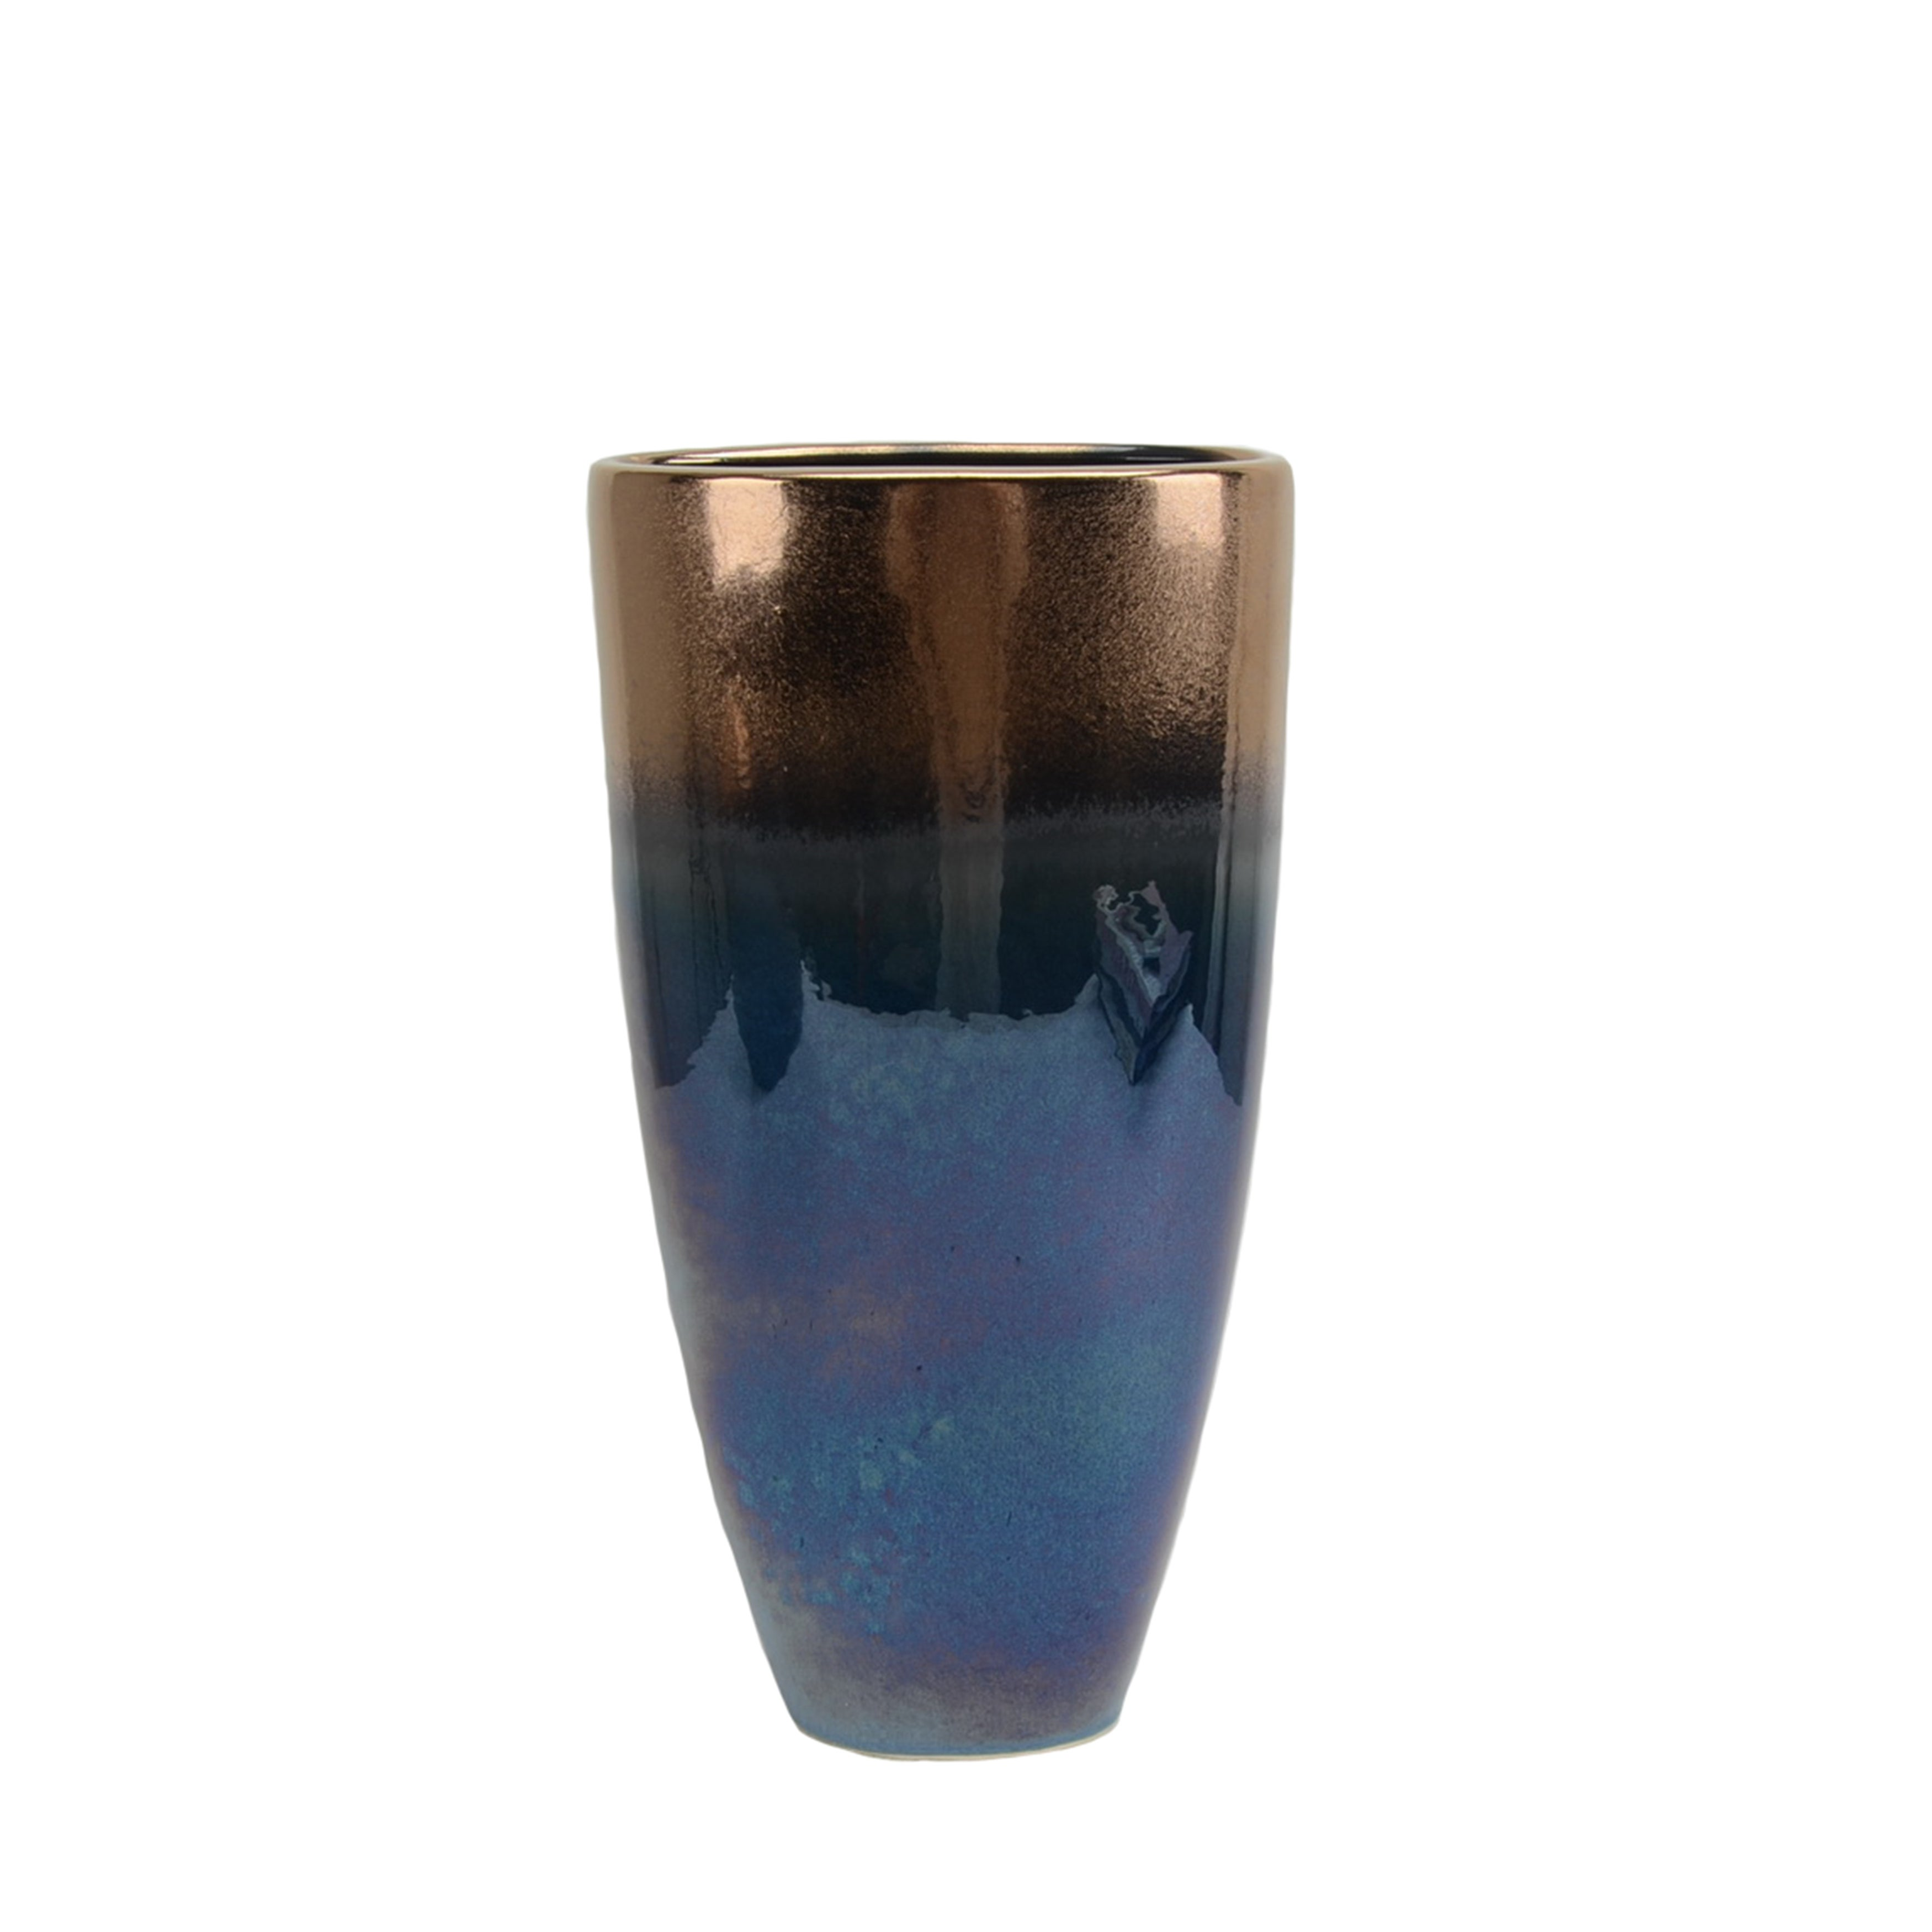 Ceramic Ombre Vase with Wide Top and tapered Bottom, Small, Copper and Blue